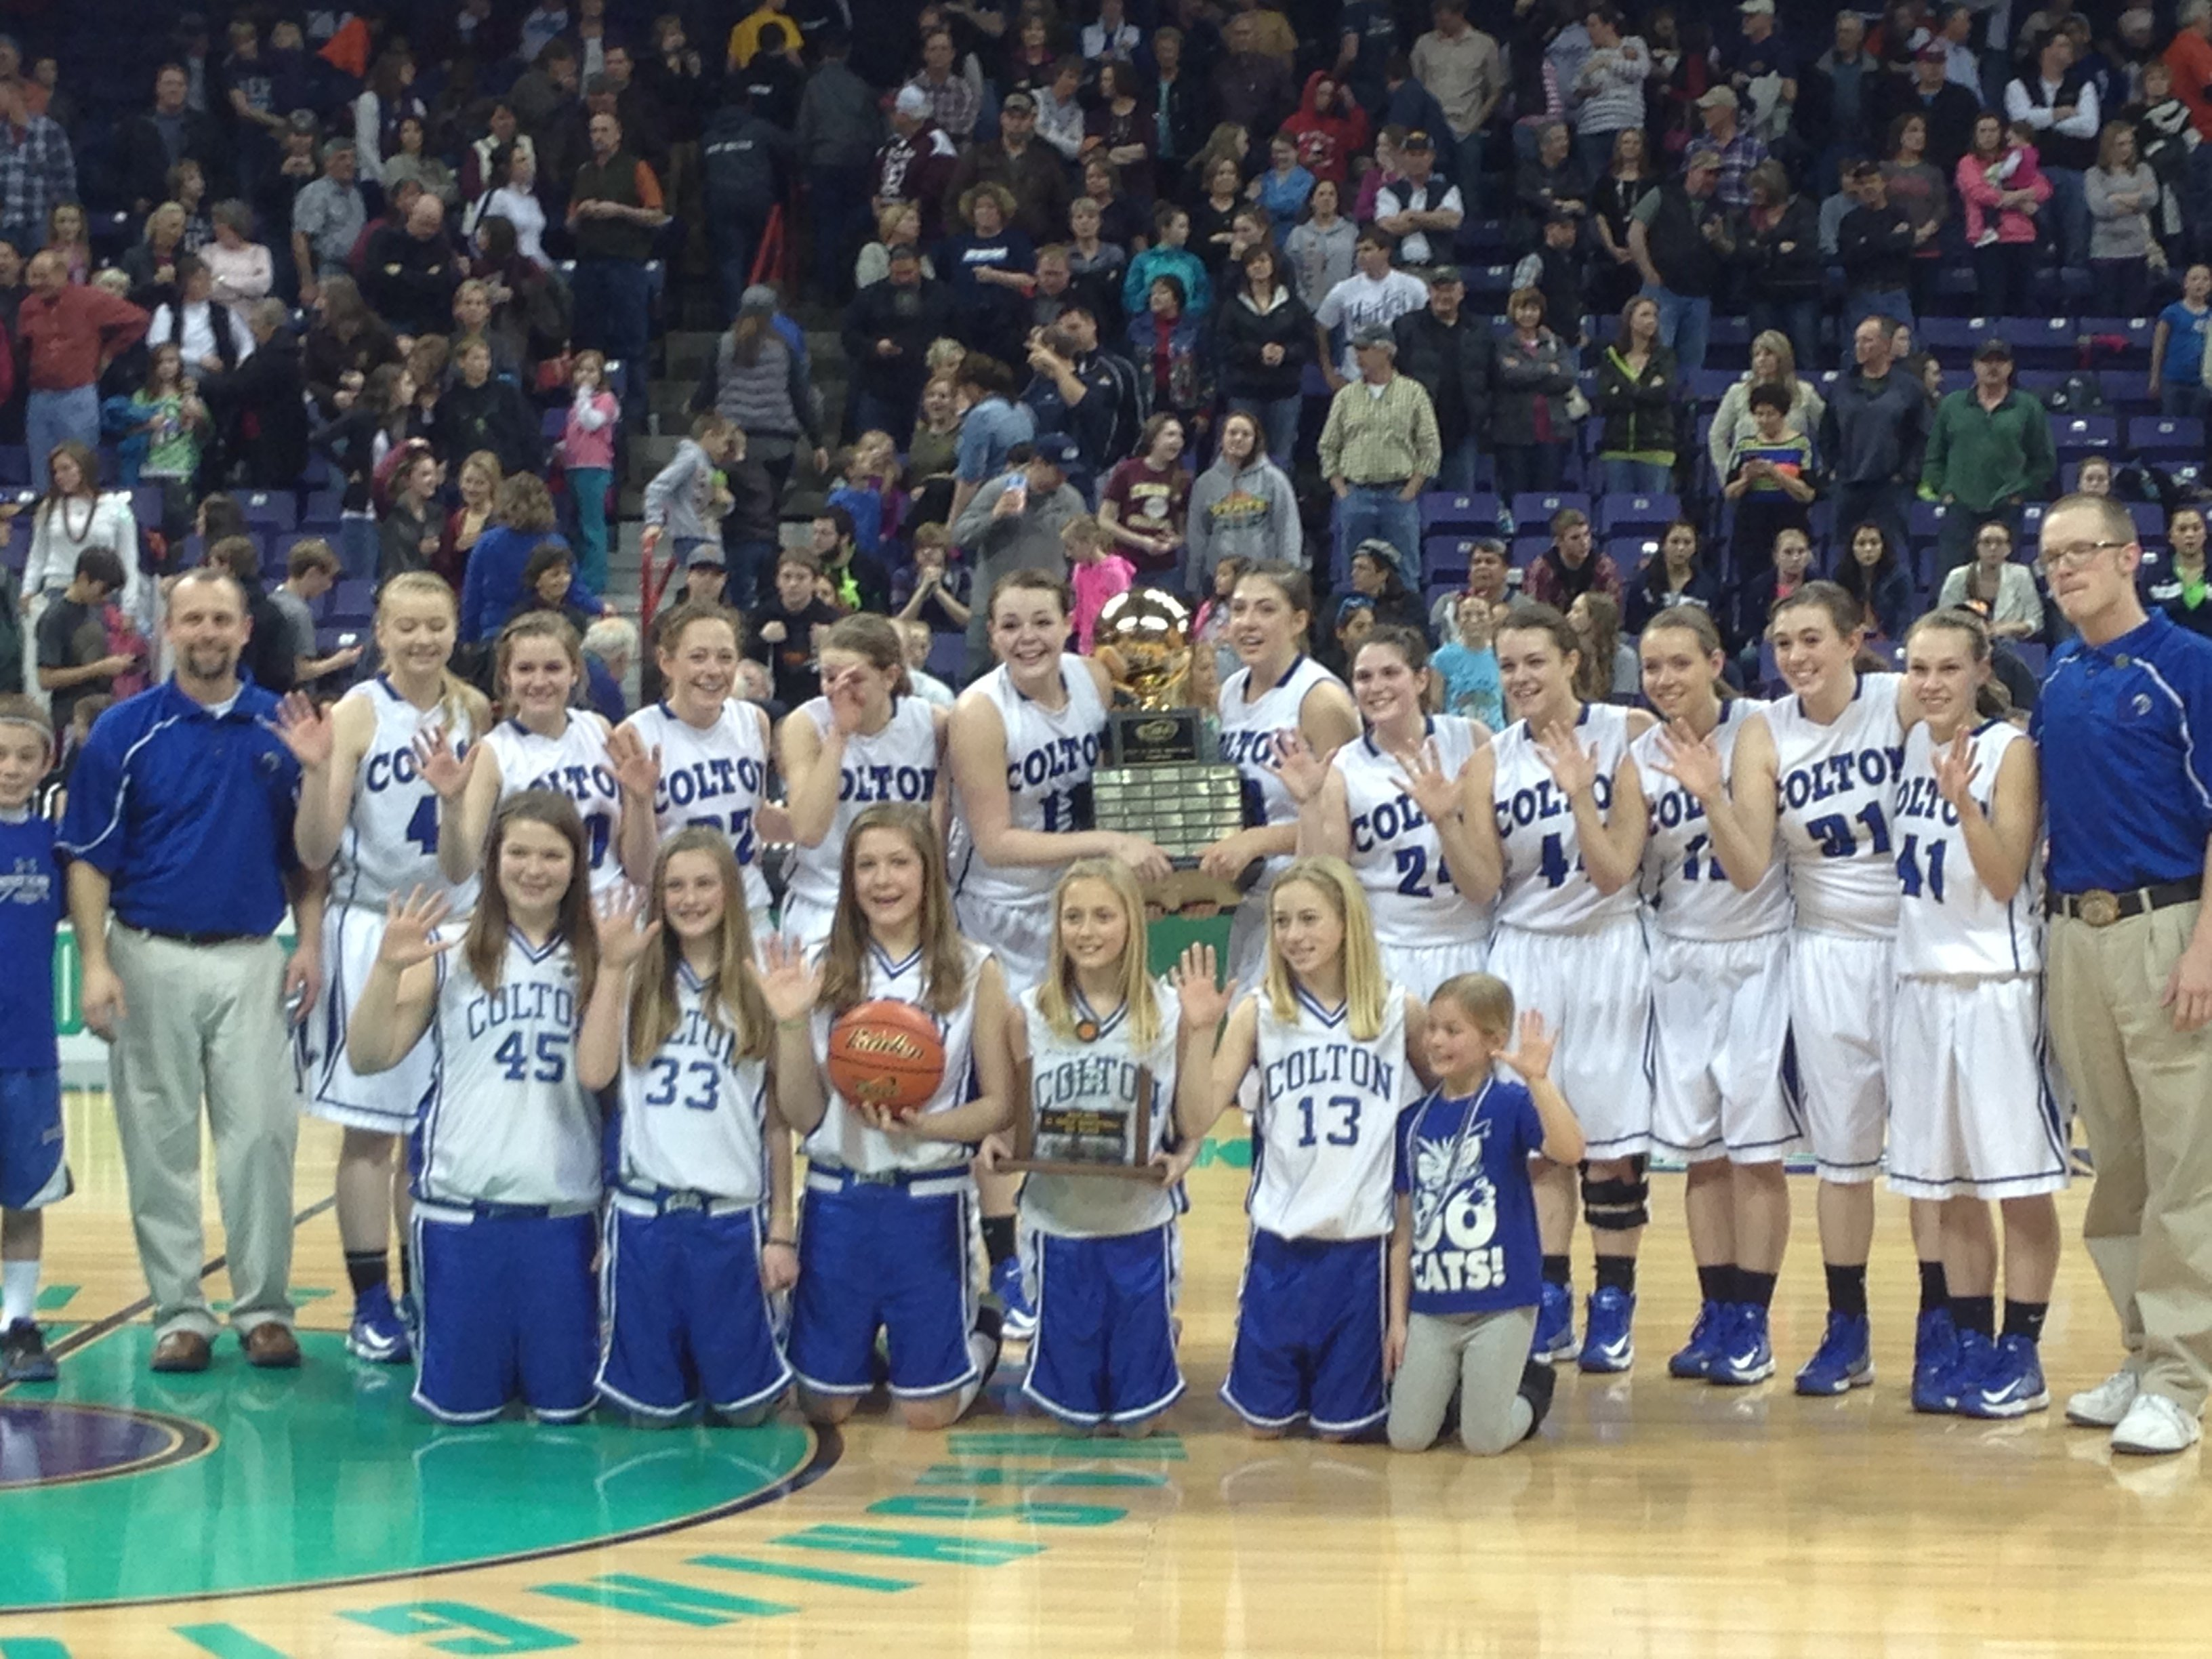 Colton won its fifth consecutive state title.